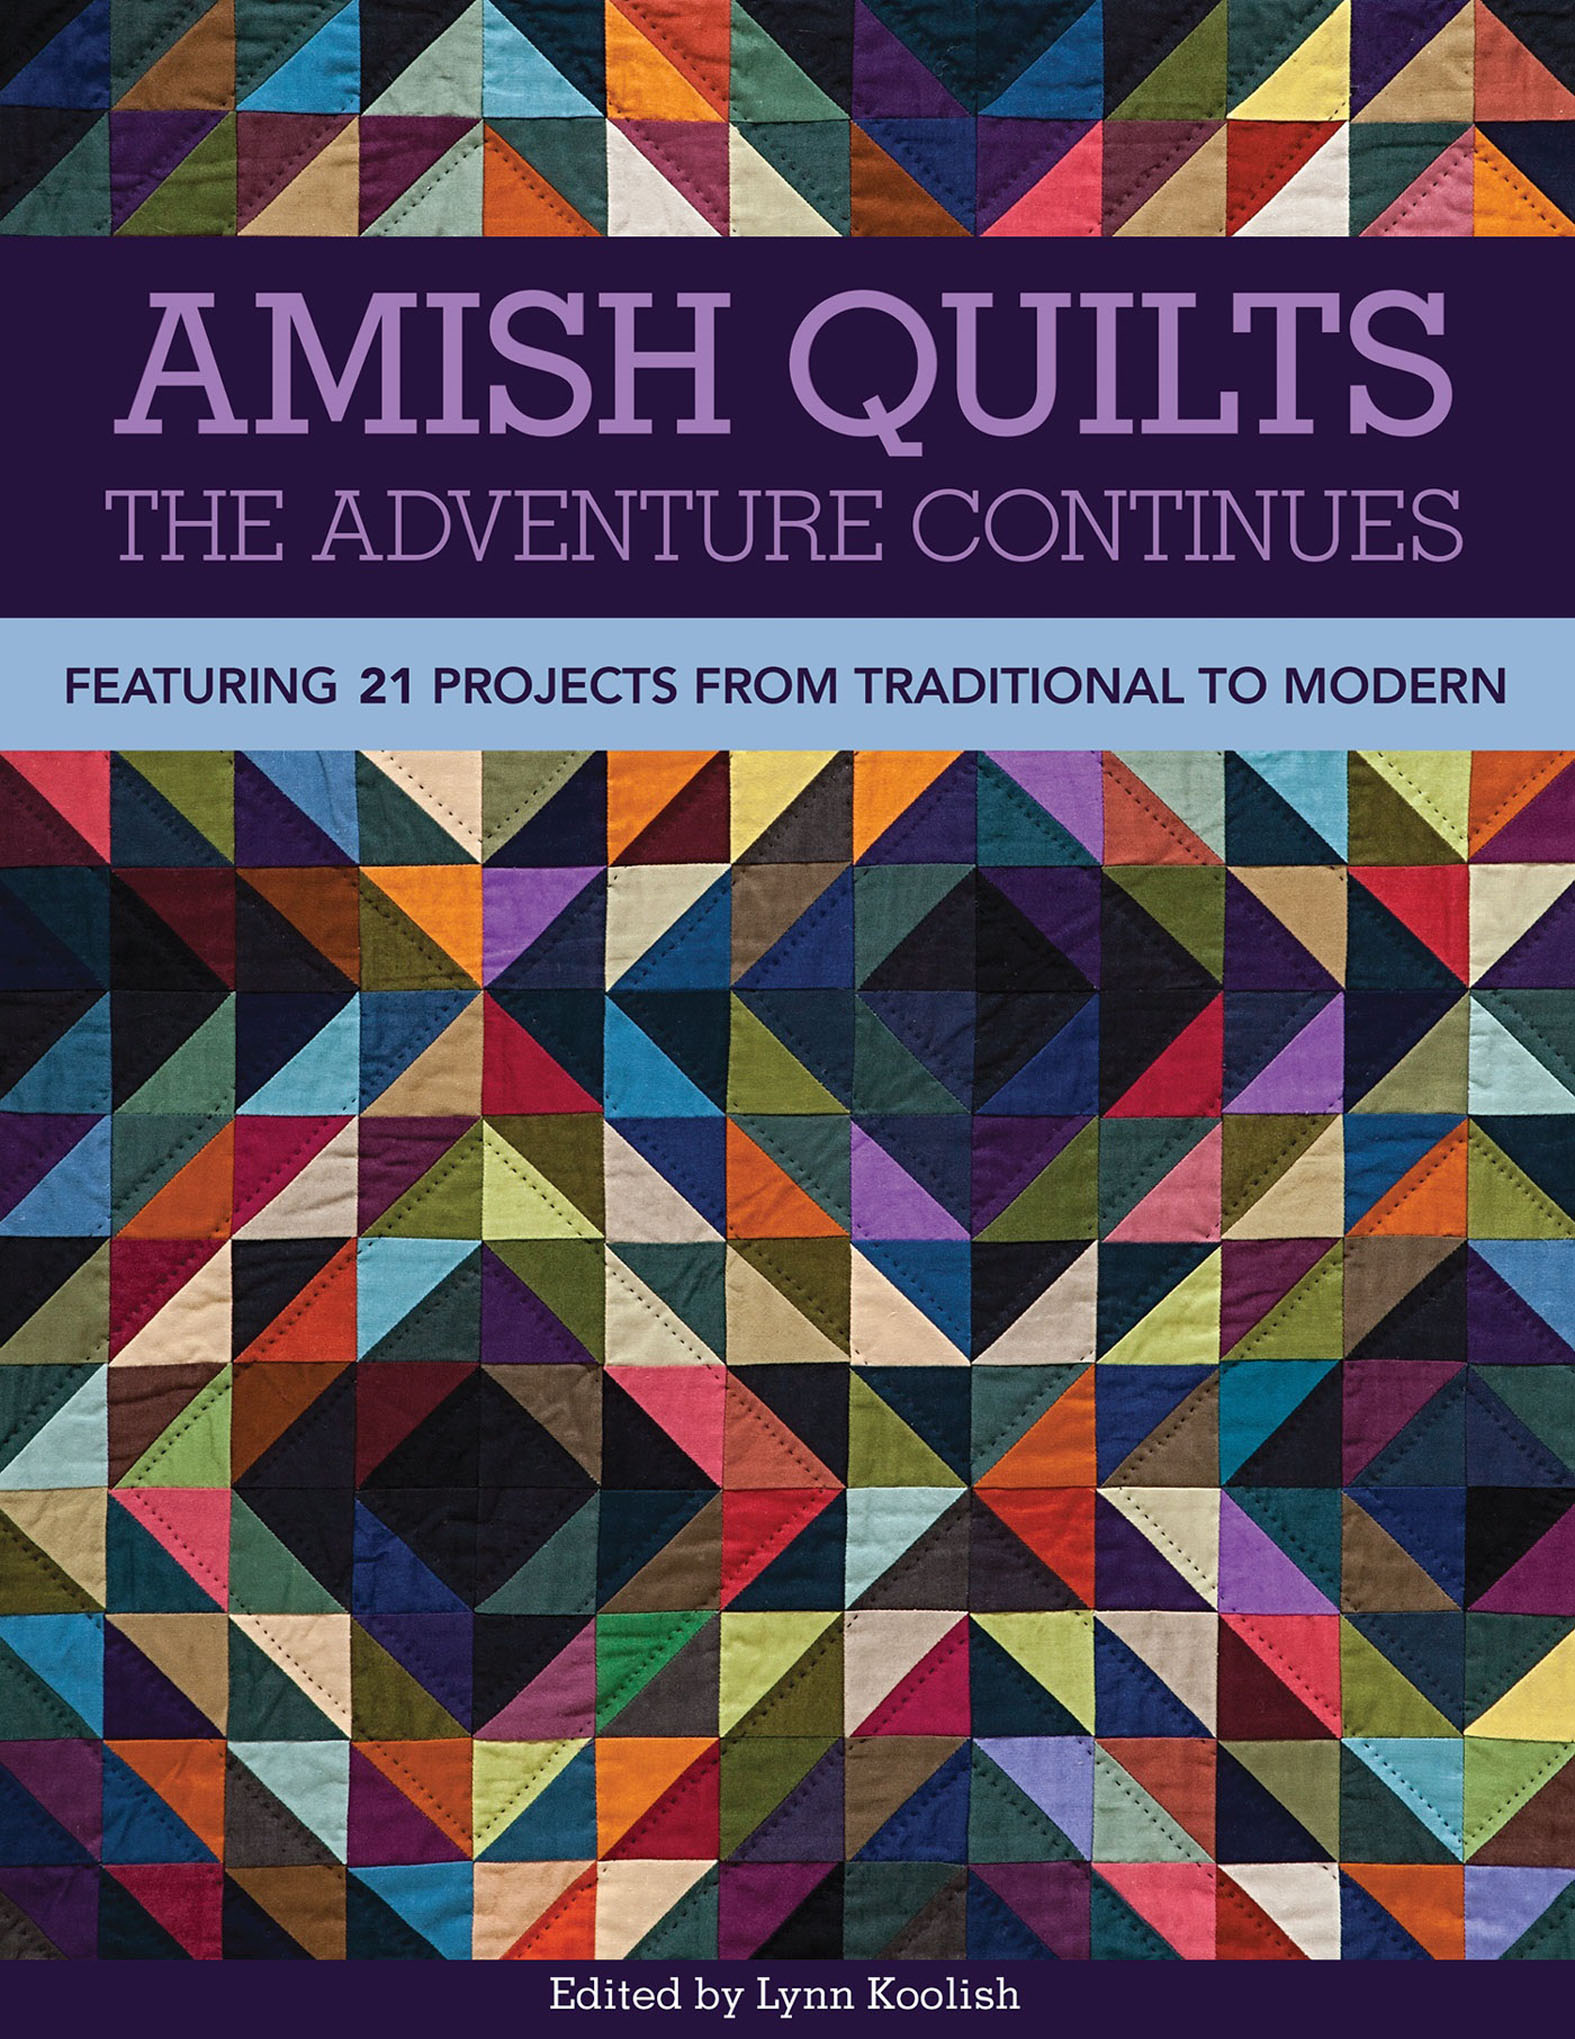 Amish Quilts—The Adventure Continues Featuring 21 Projects from Traditional to Modern